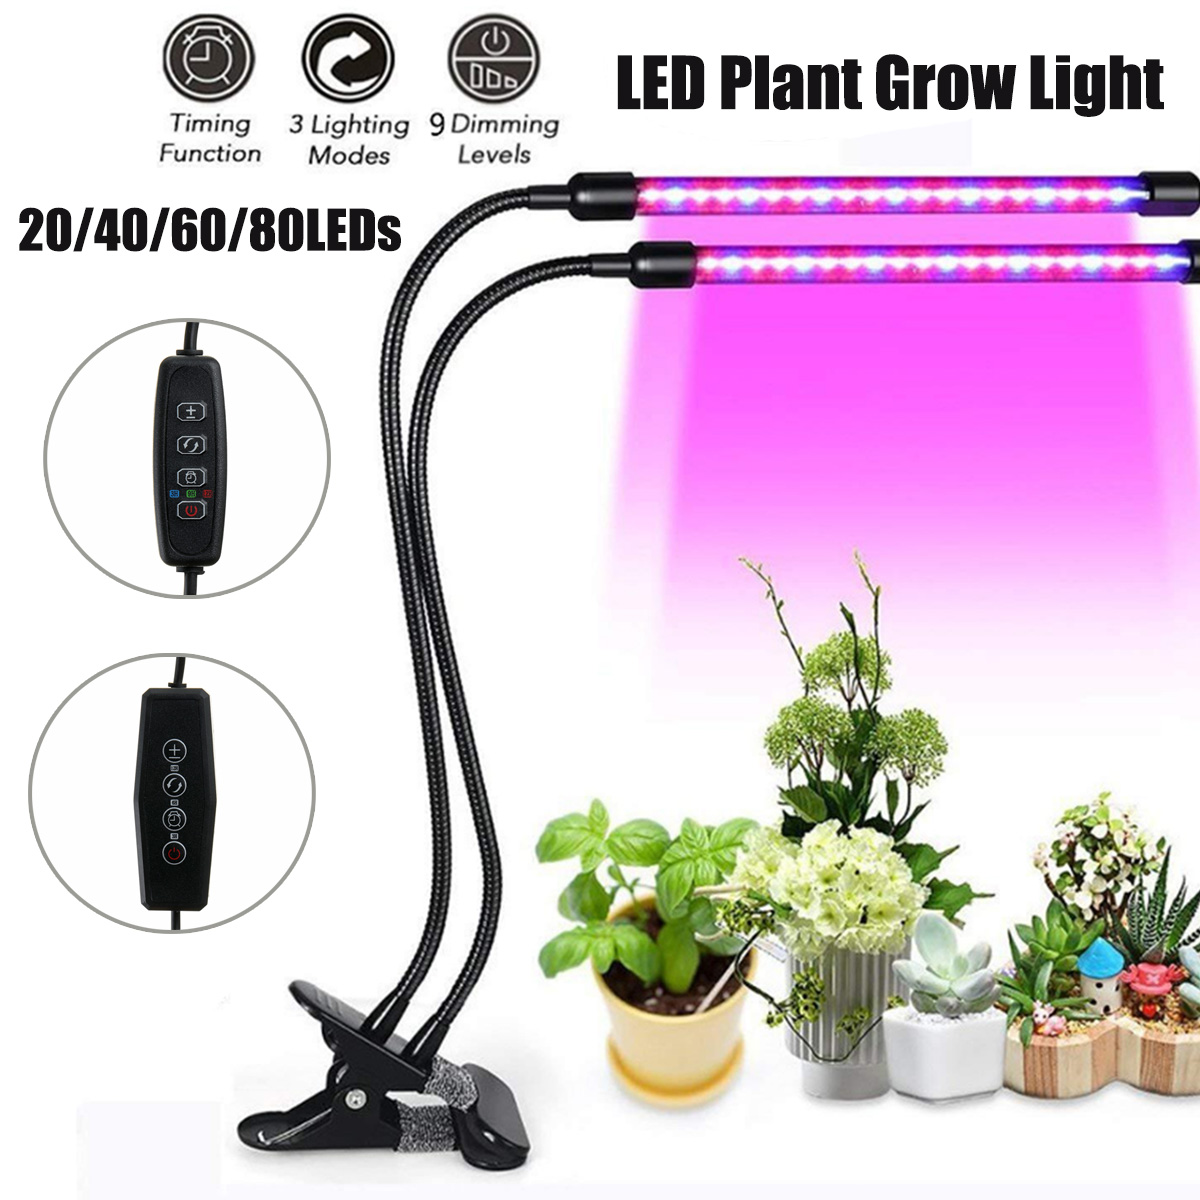 LED Grow Light USB 10W 20W 30W 40W LED Full Spectrum Phyto Lamp Phyto-Lamp For Indoor Vegetable Flowers Plant Growth Lighting